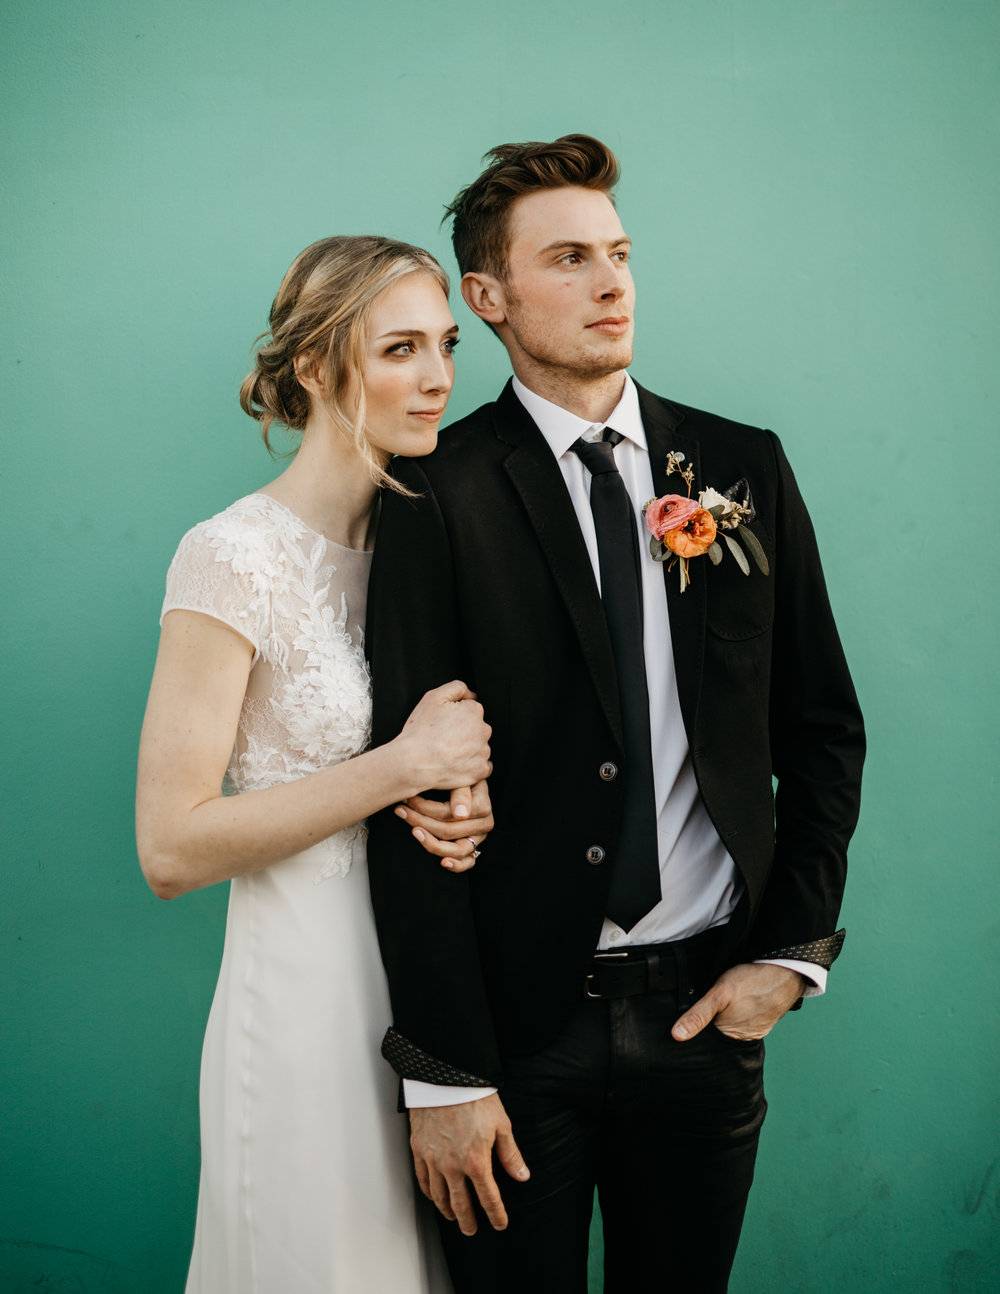 PHOTON STUDIO WEDDING | PORTLAND OREGON -